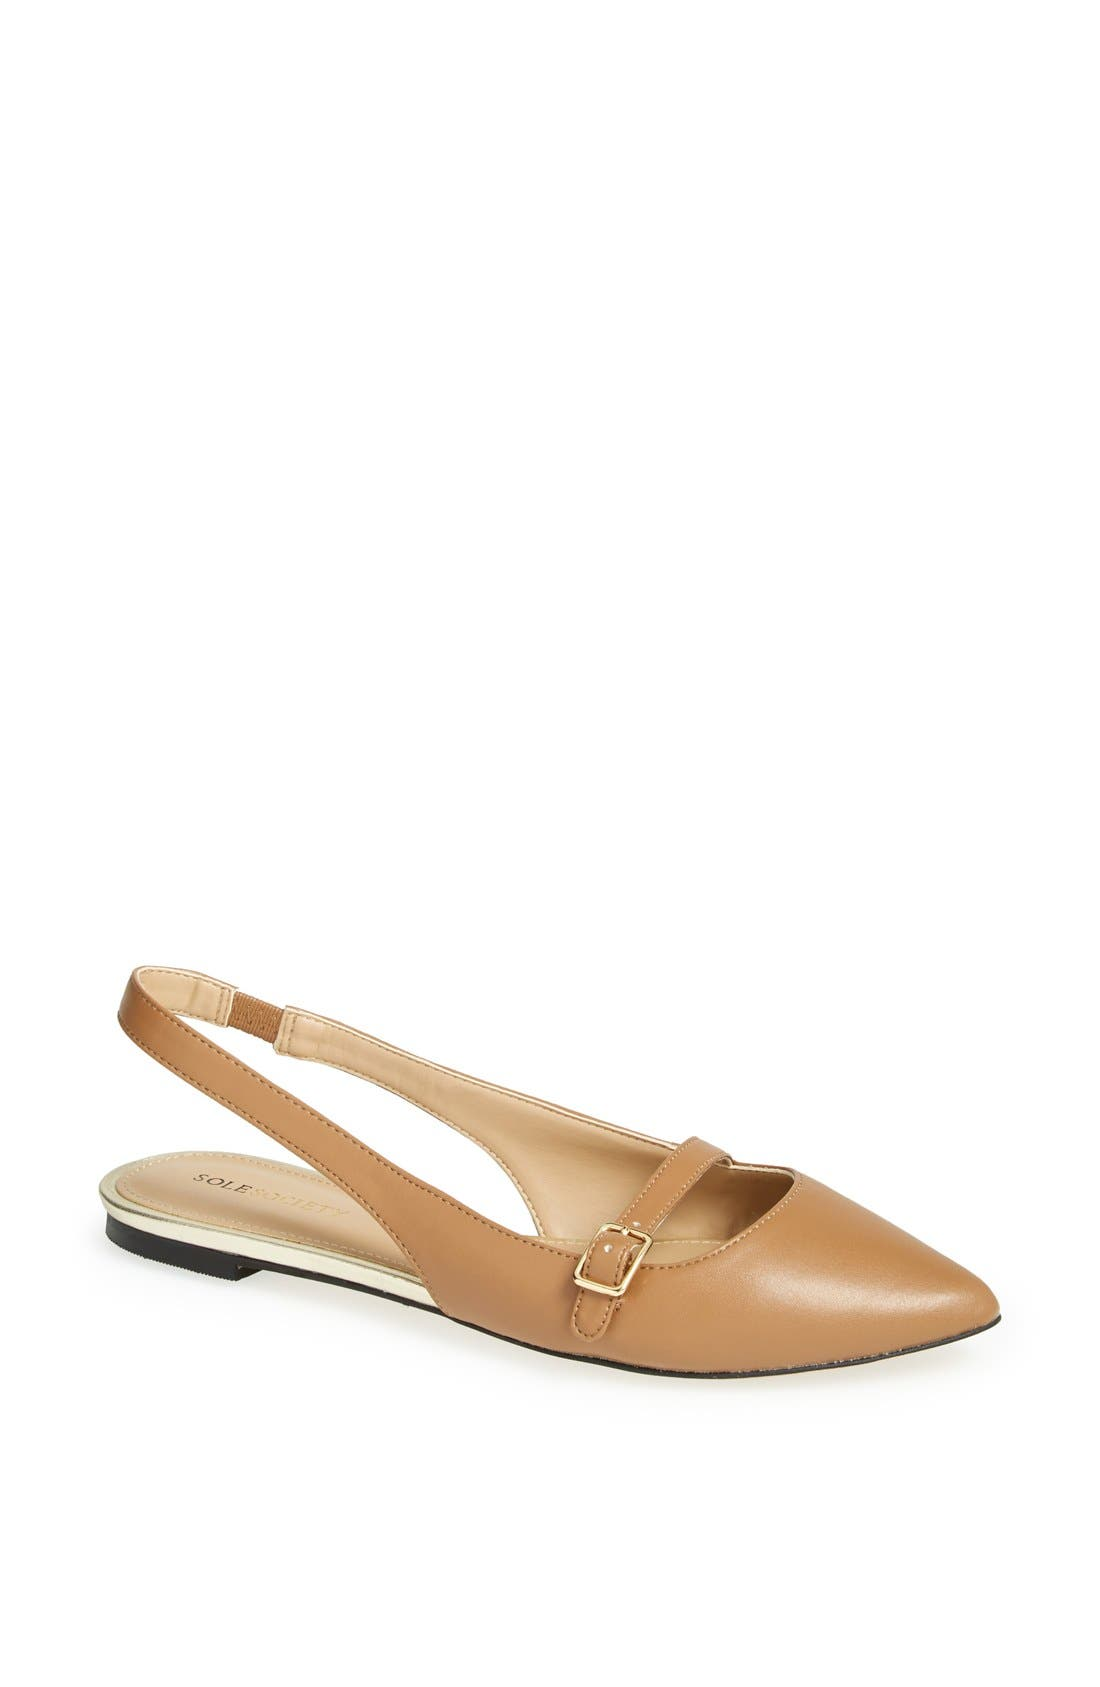 Alternate Image 1 Selected - Sole Society 'Lynette' Flat